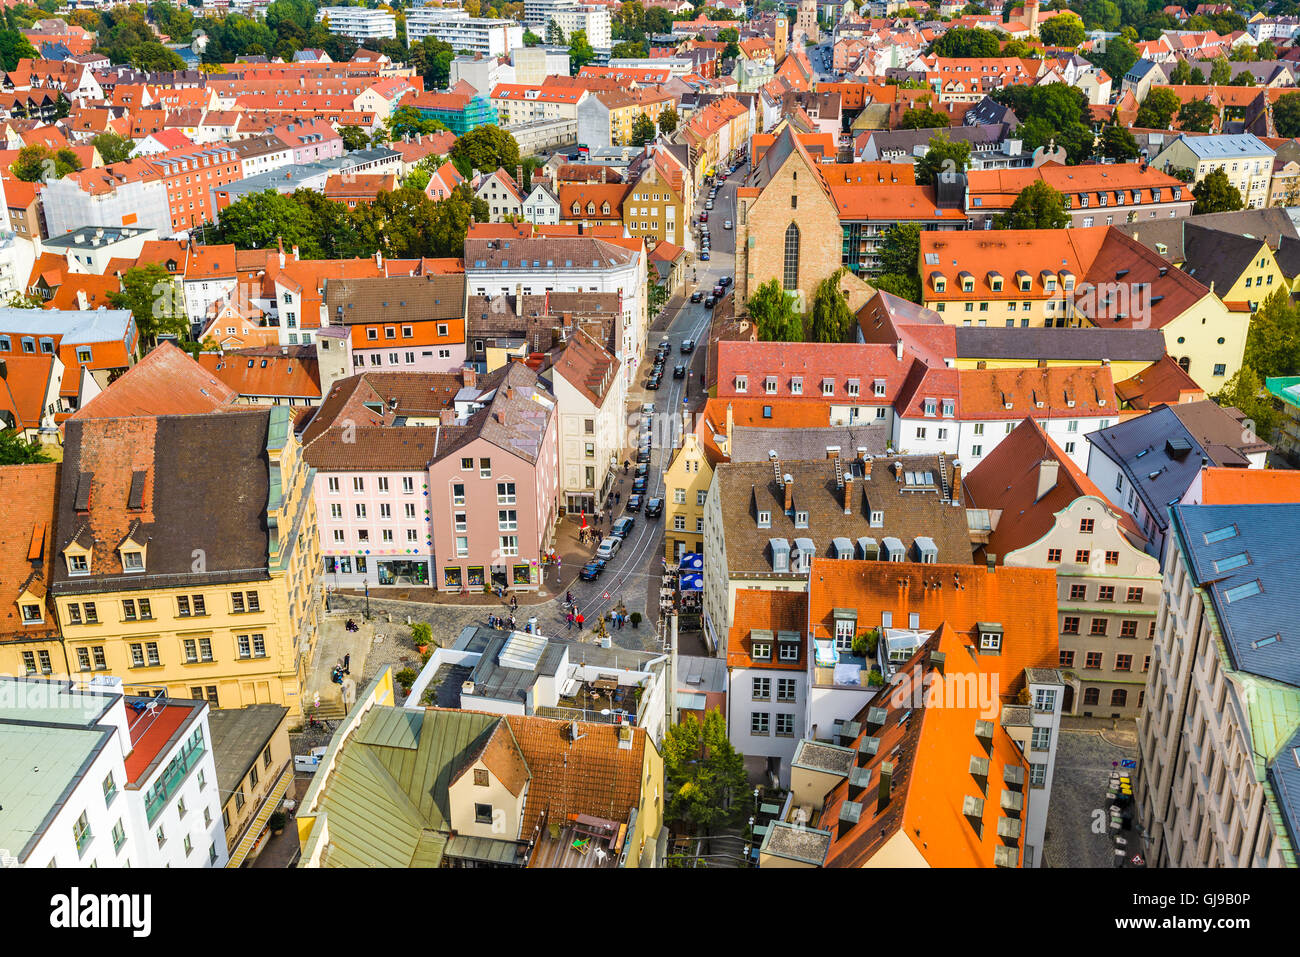 Augsburg, Germany rooftop town view. - Stock Image